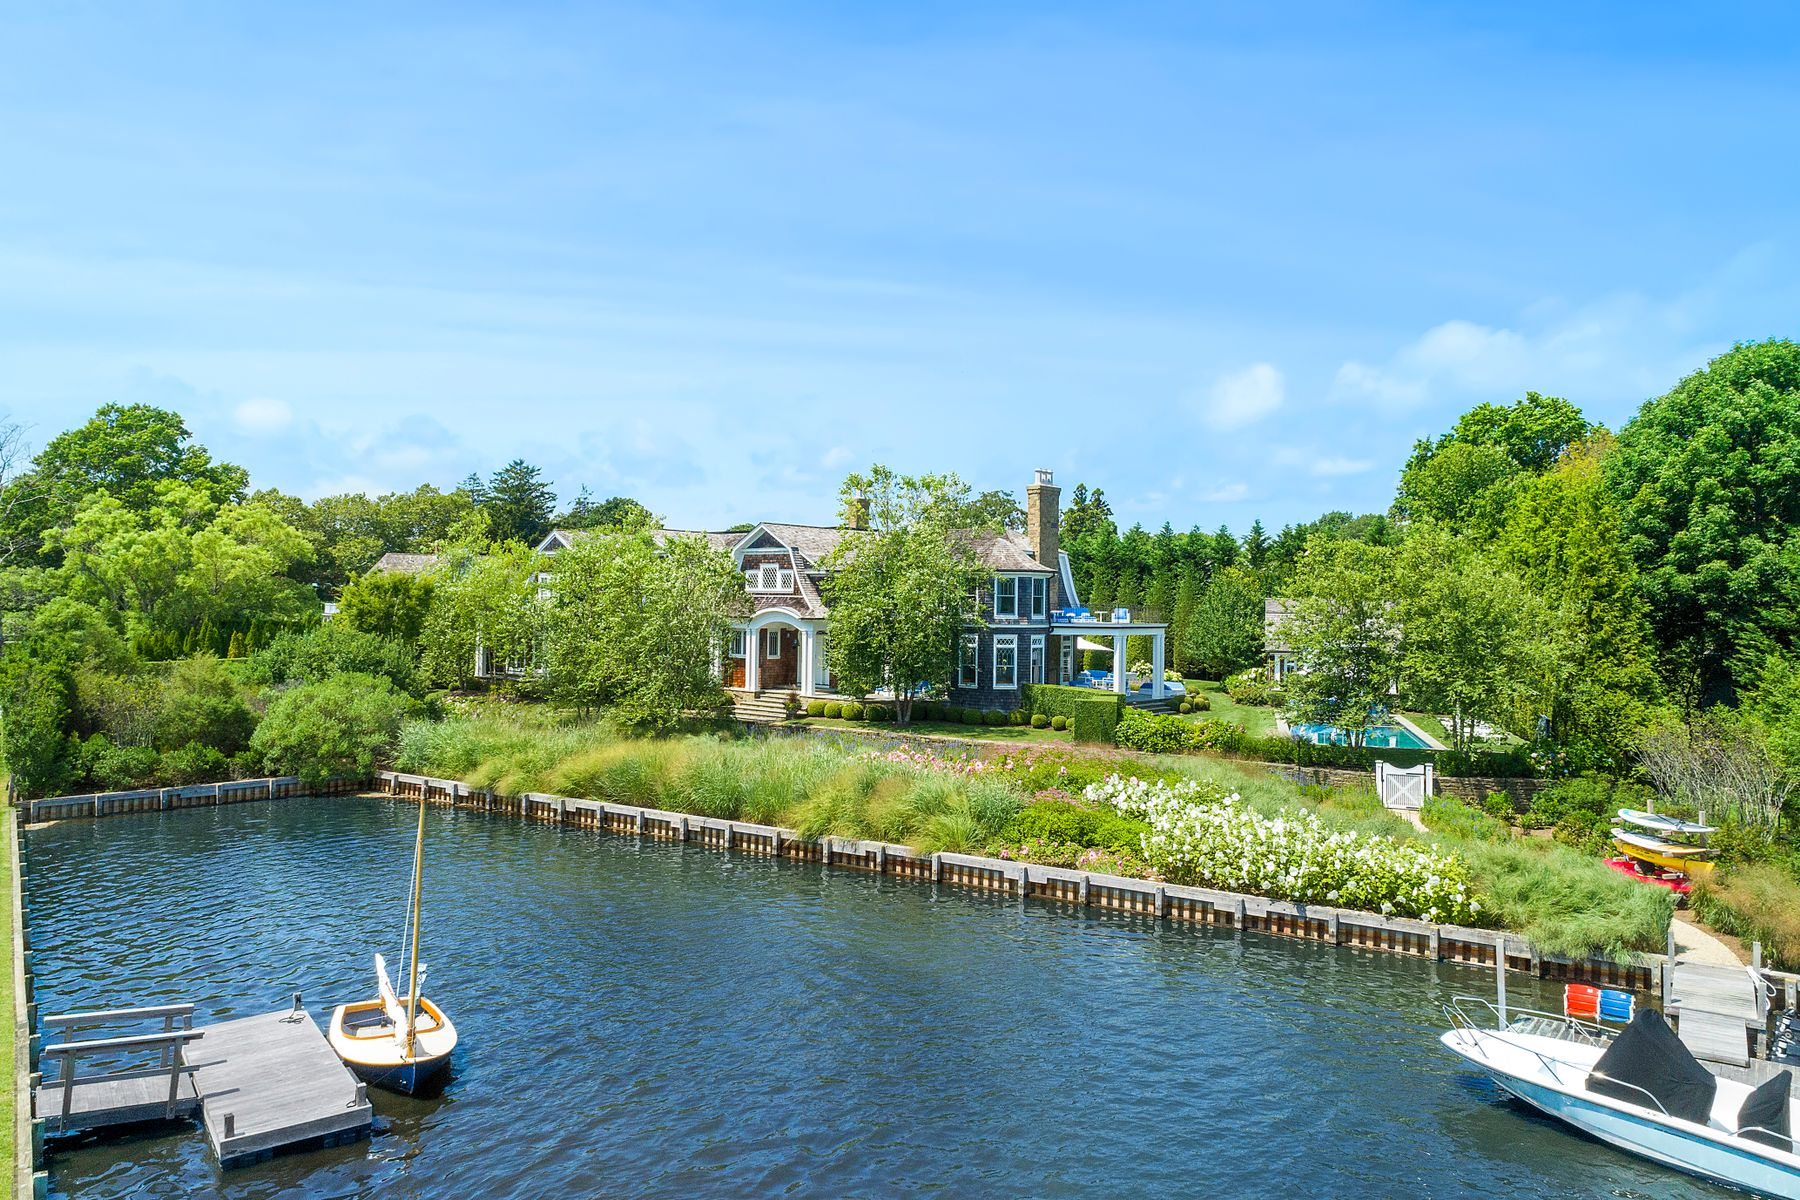 Property for Sale at Water Mill Waterfront 29 Cobb Isle Road Water Mill, New York 11976 United States